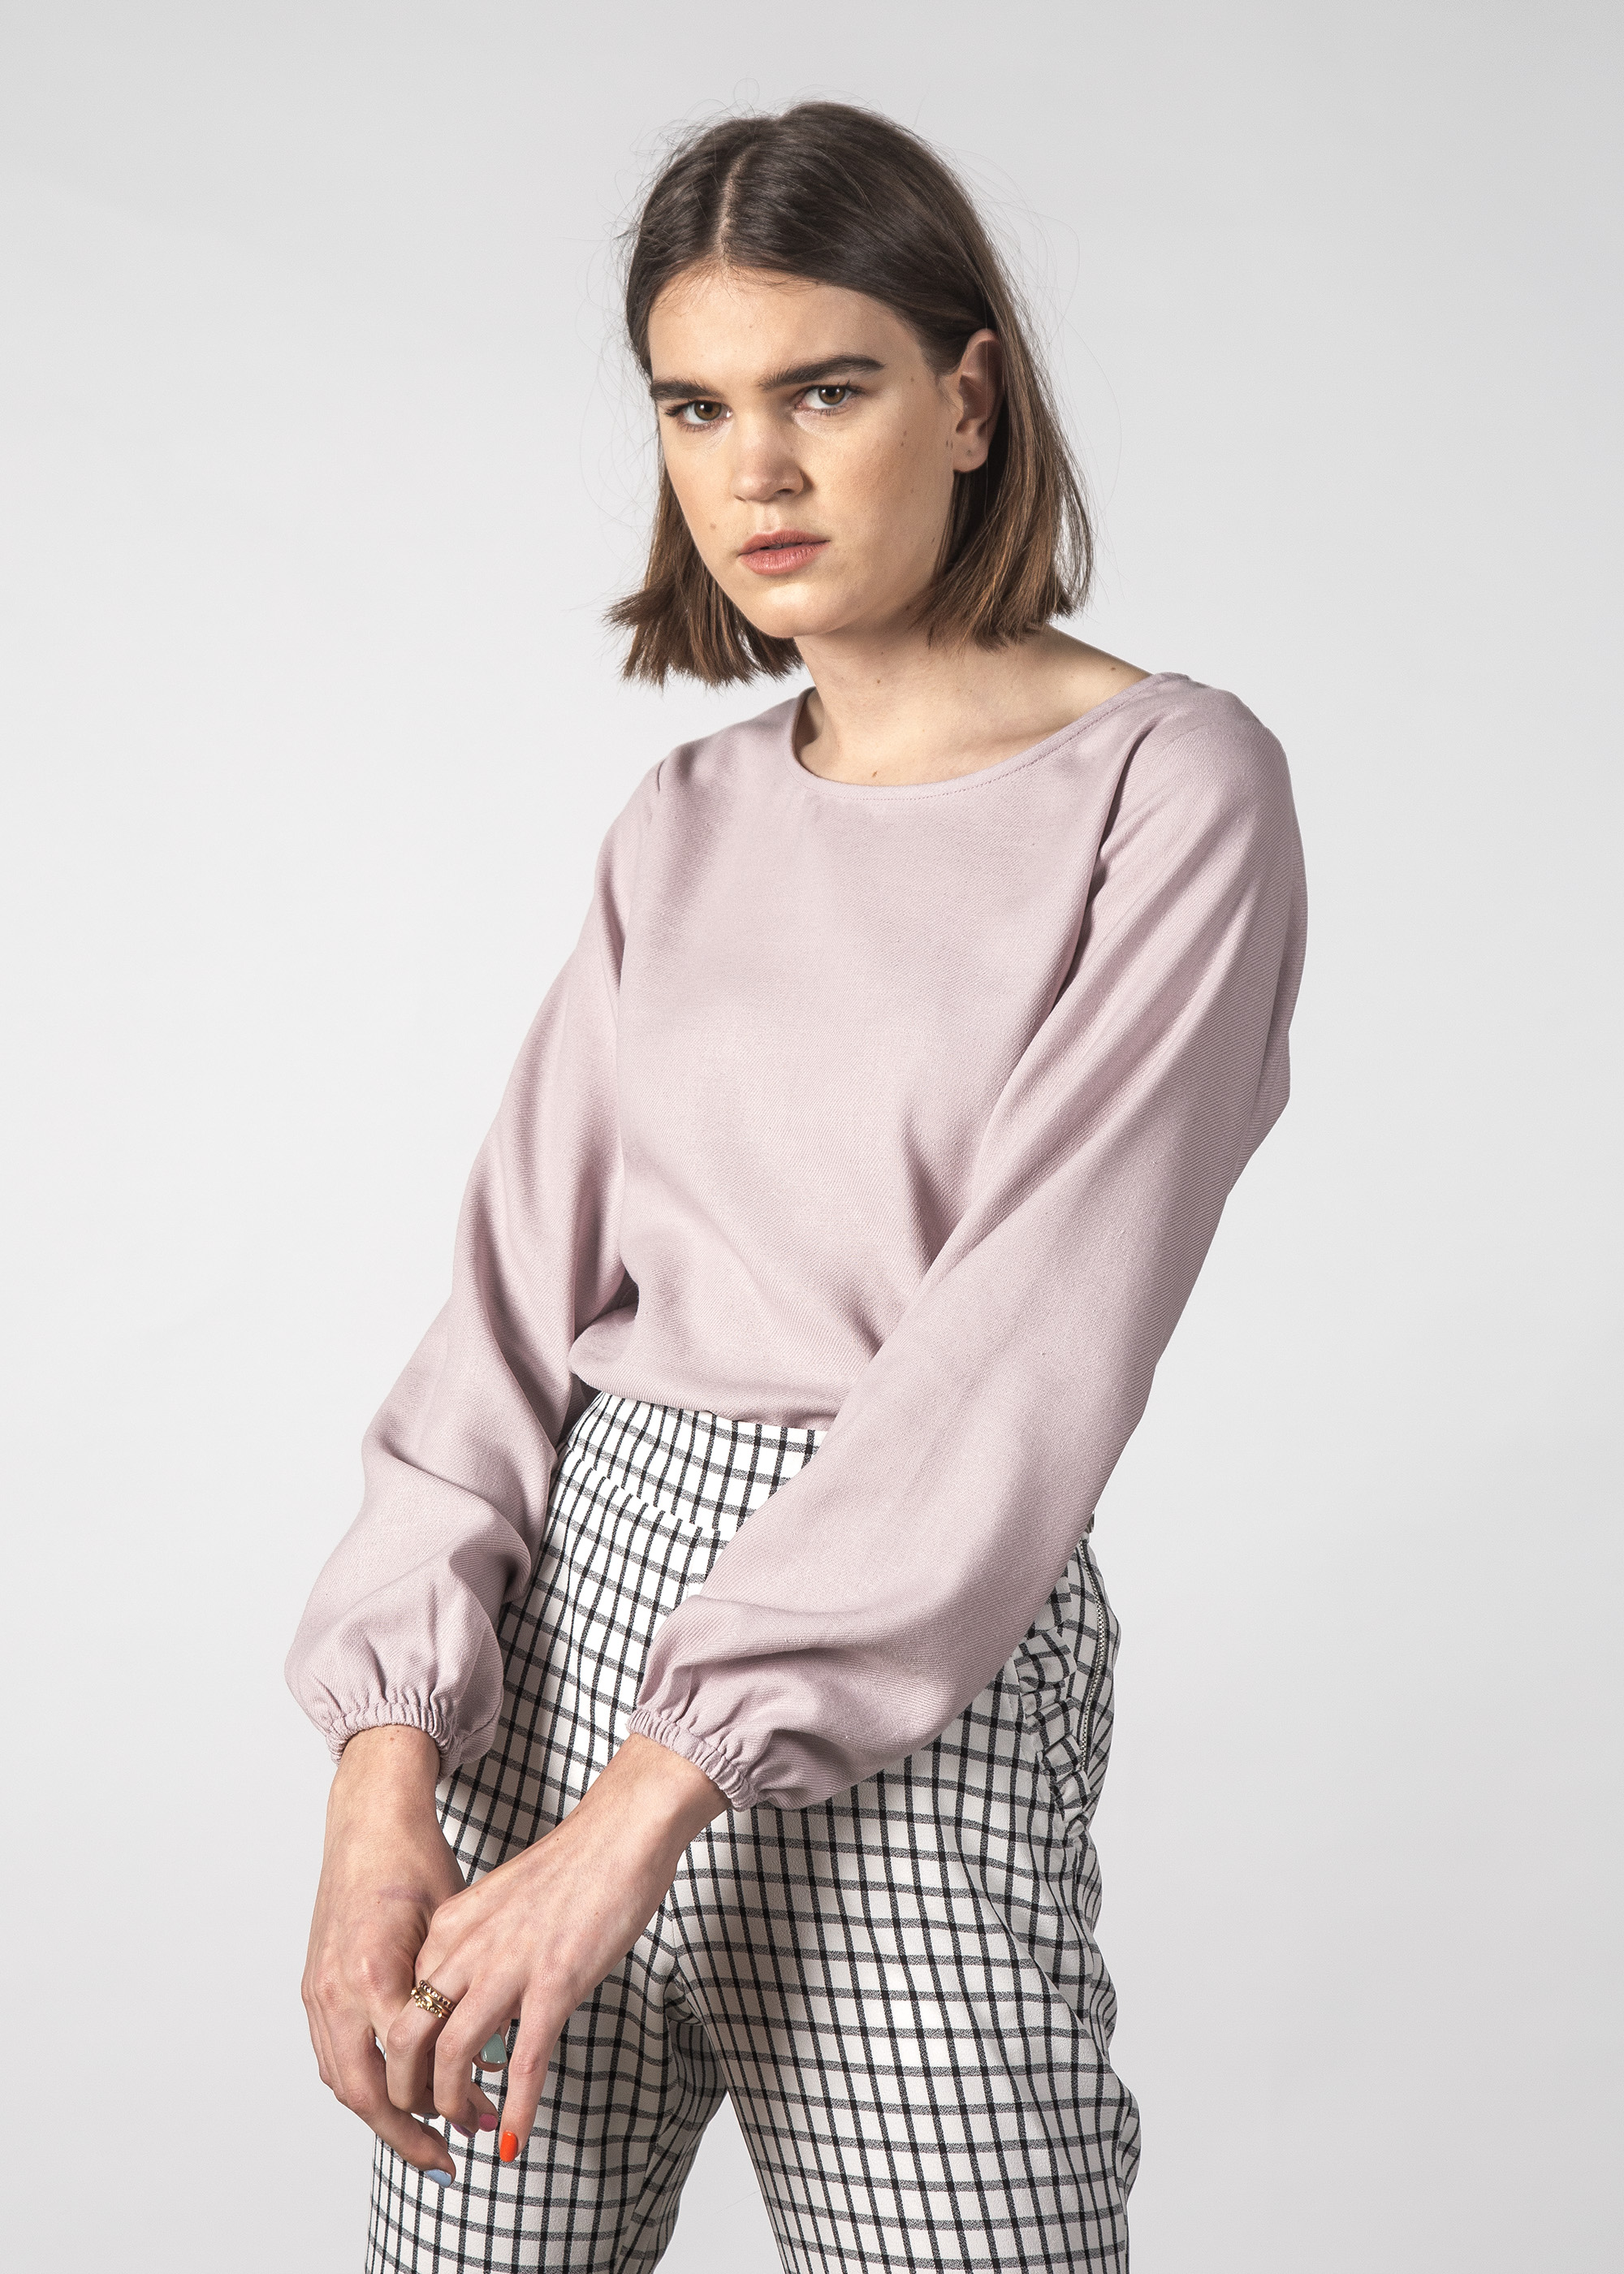 c6f64a9766c4f3 CLOUD TOP MAUVE - Womens-Tops : Urban Streetwear Fashion, Skater & Surf  Clothes Online Auckland NZ - THING THING AU19